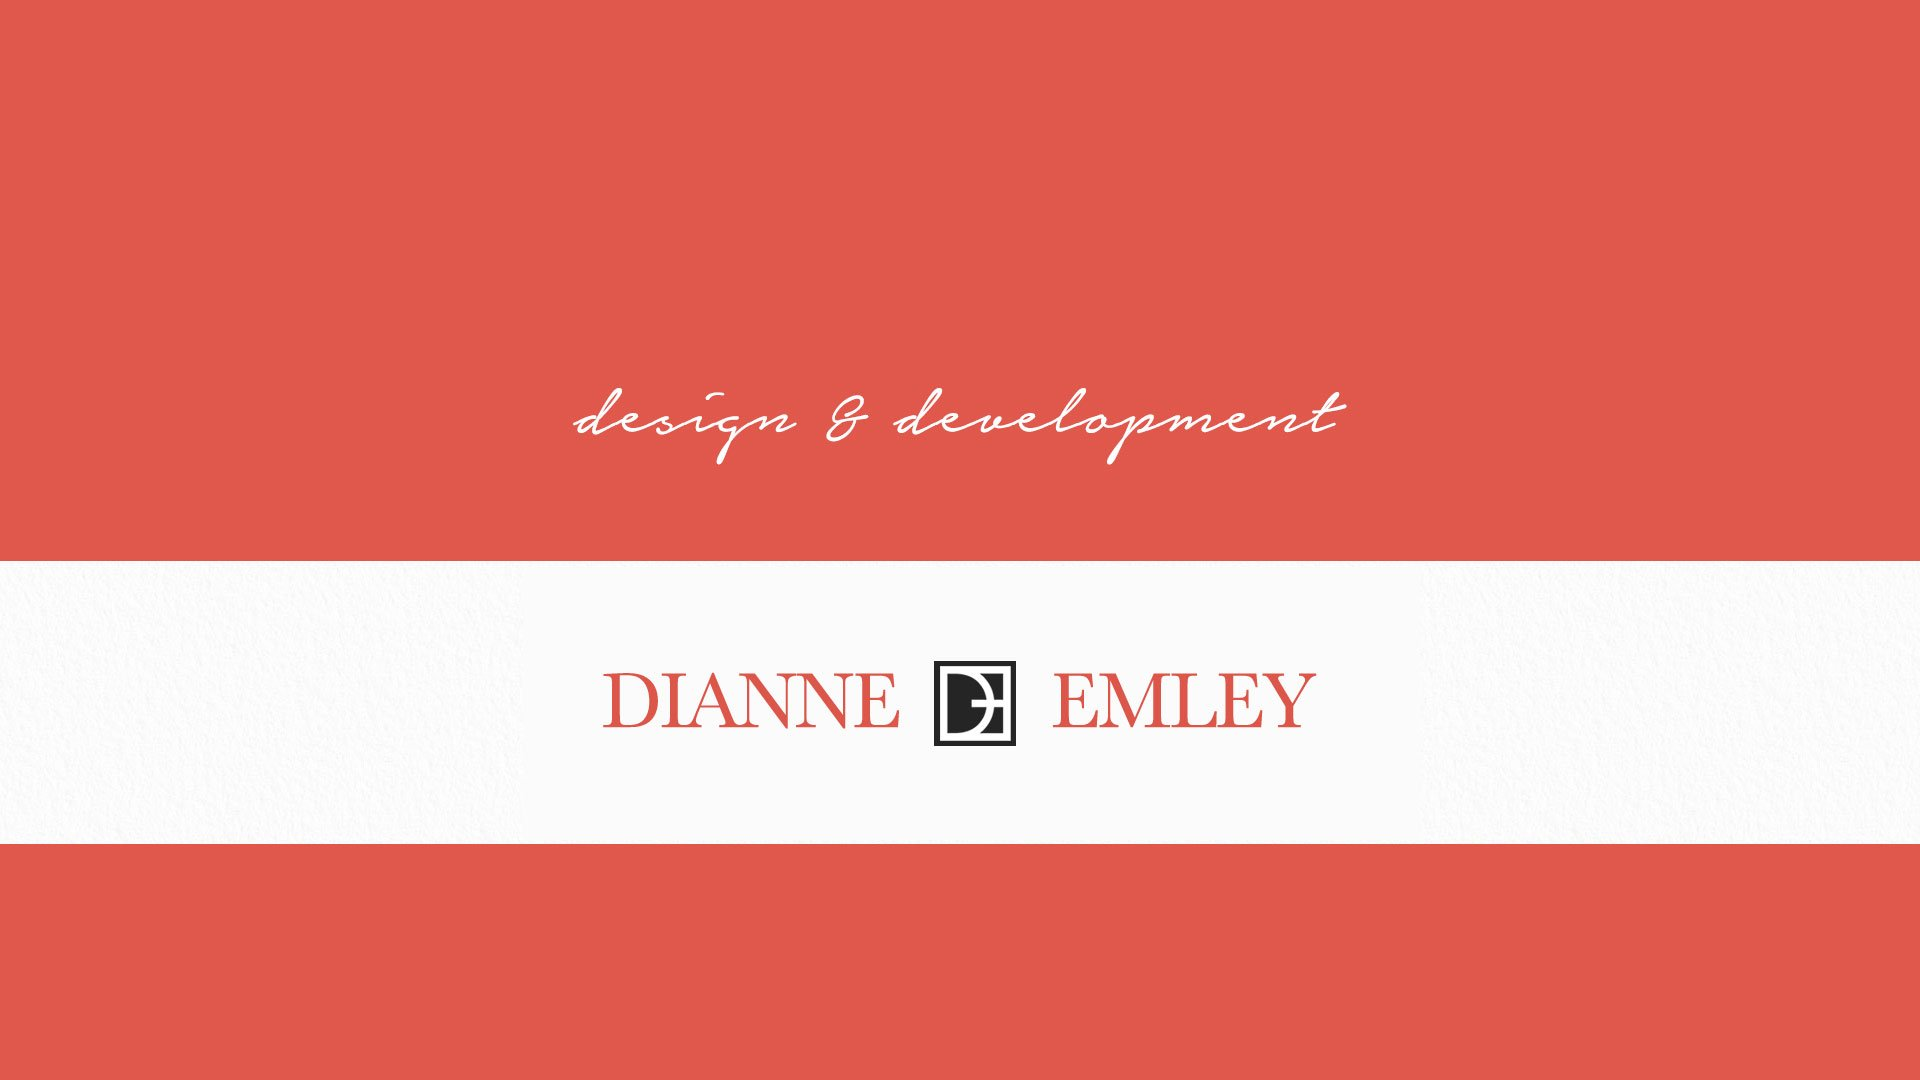 A Photo of Dianne Emley's Logo